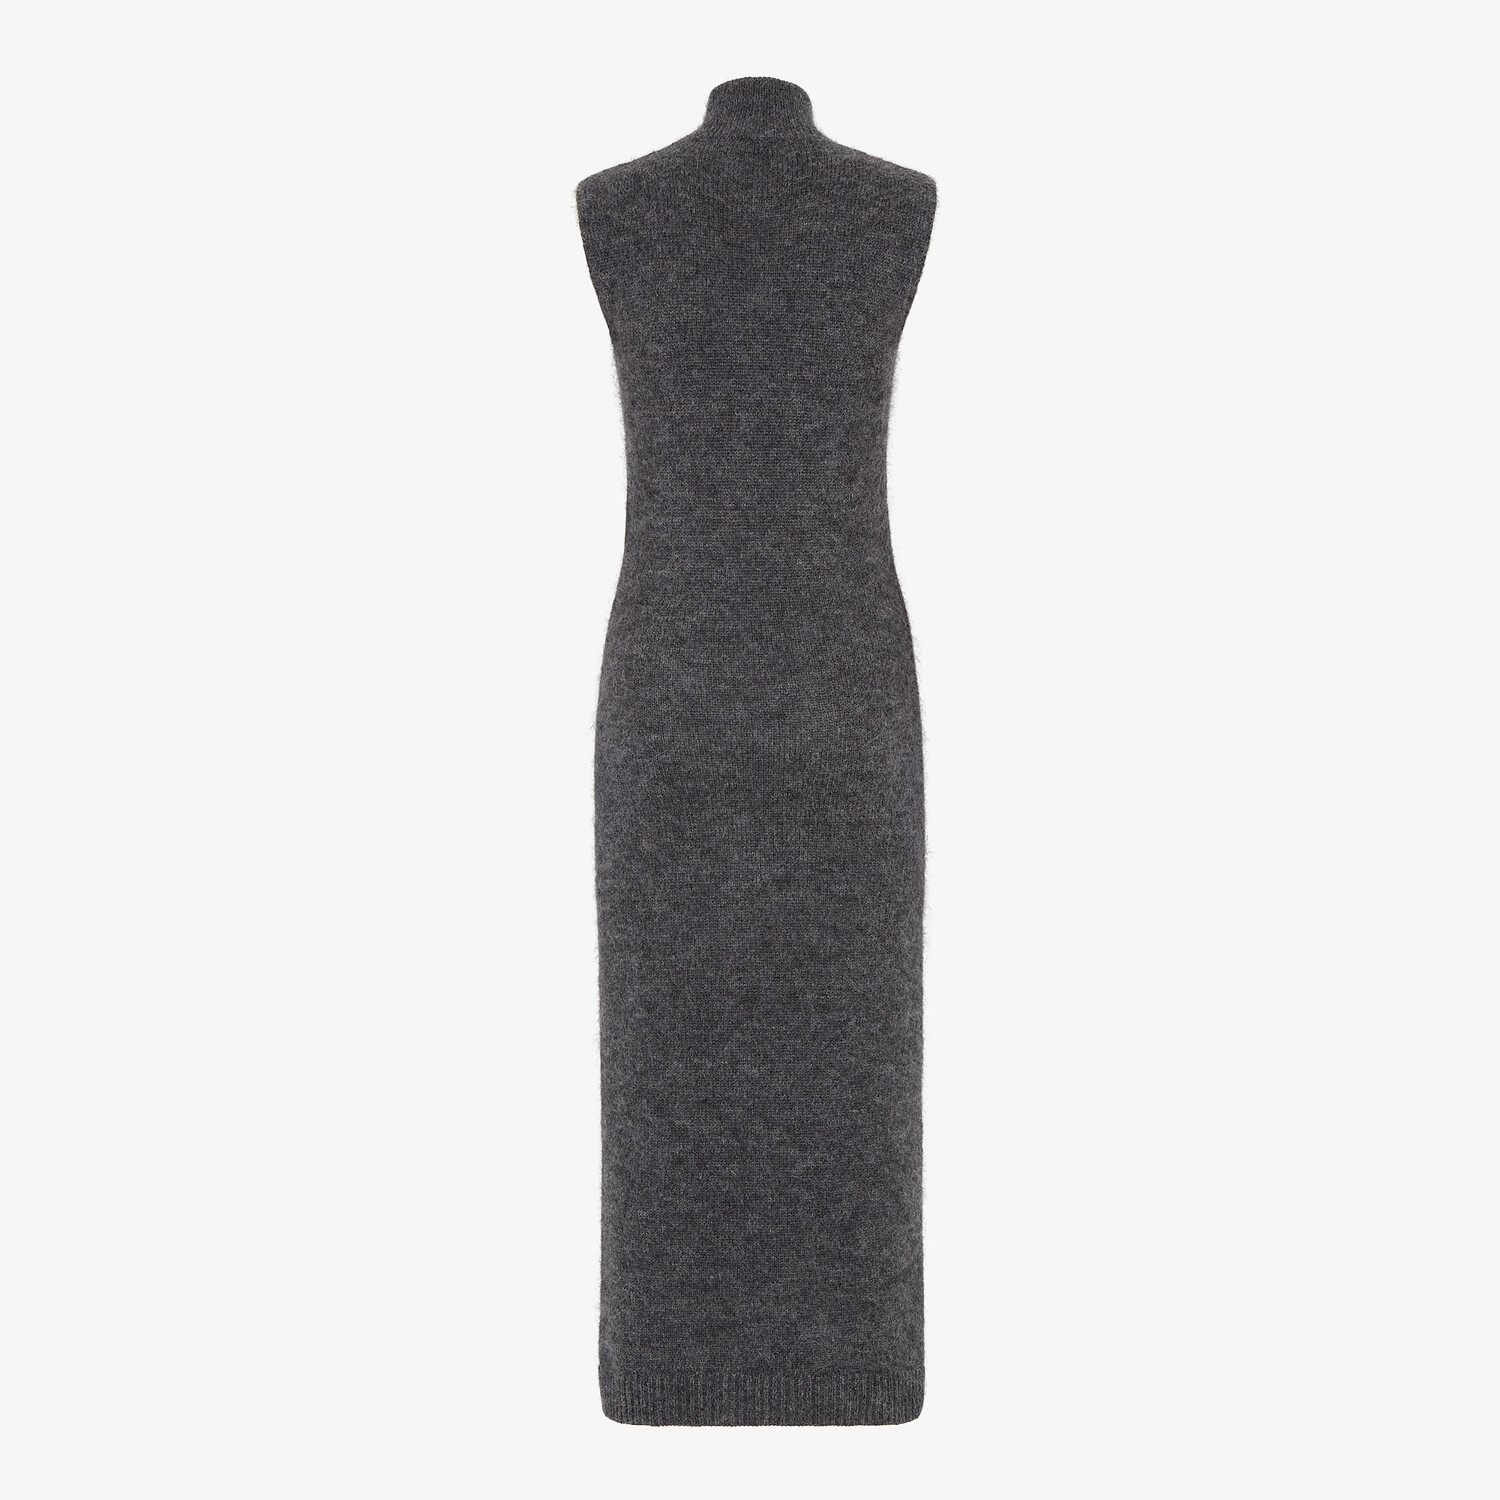 FENDI DRESS - Grey mohair and cashmere dress - view 2 detail